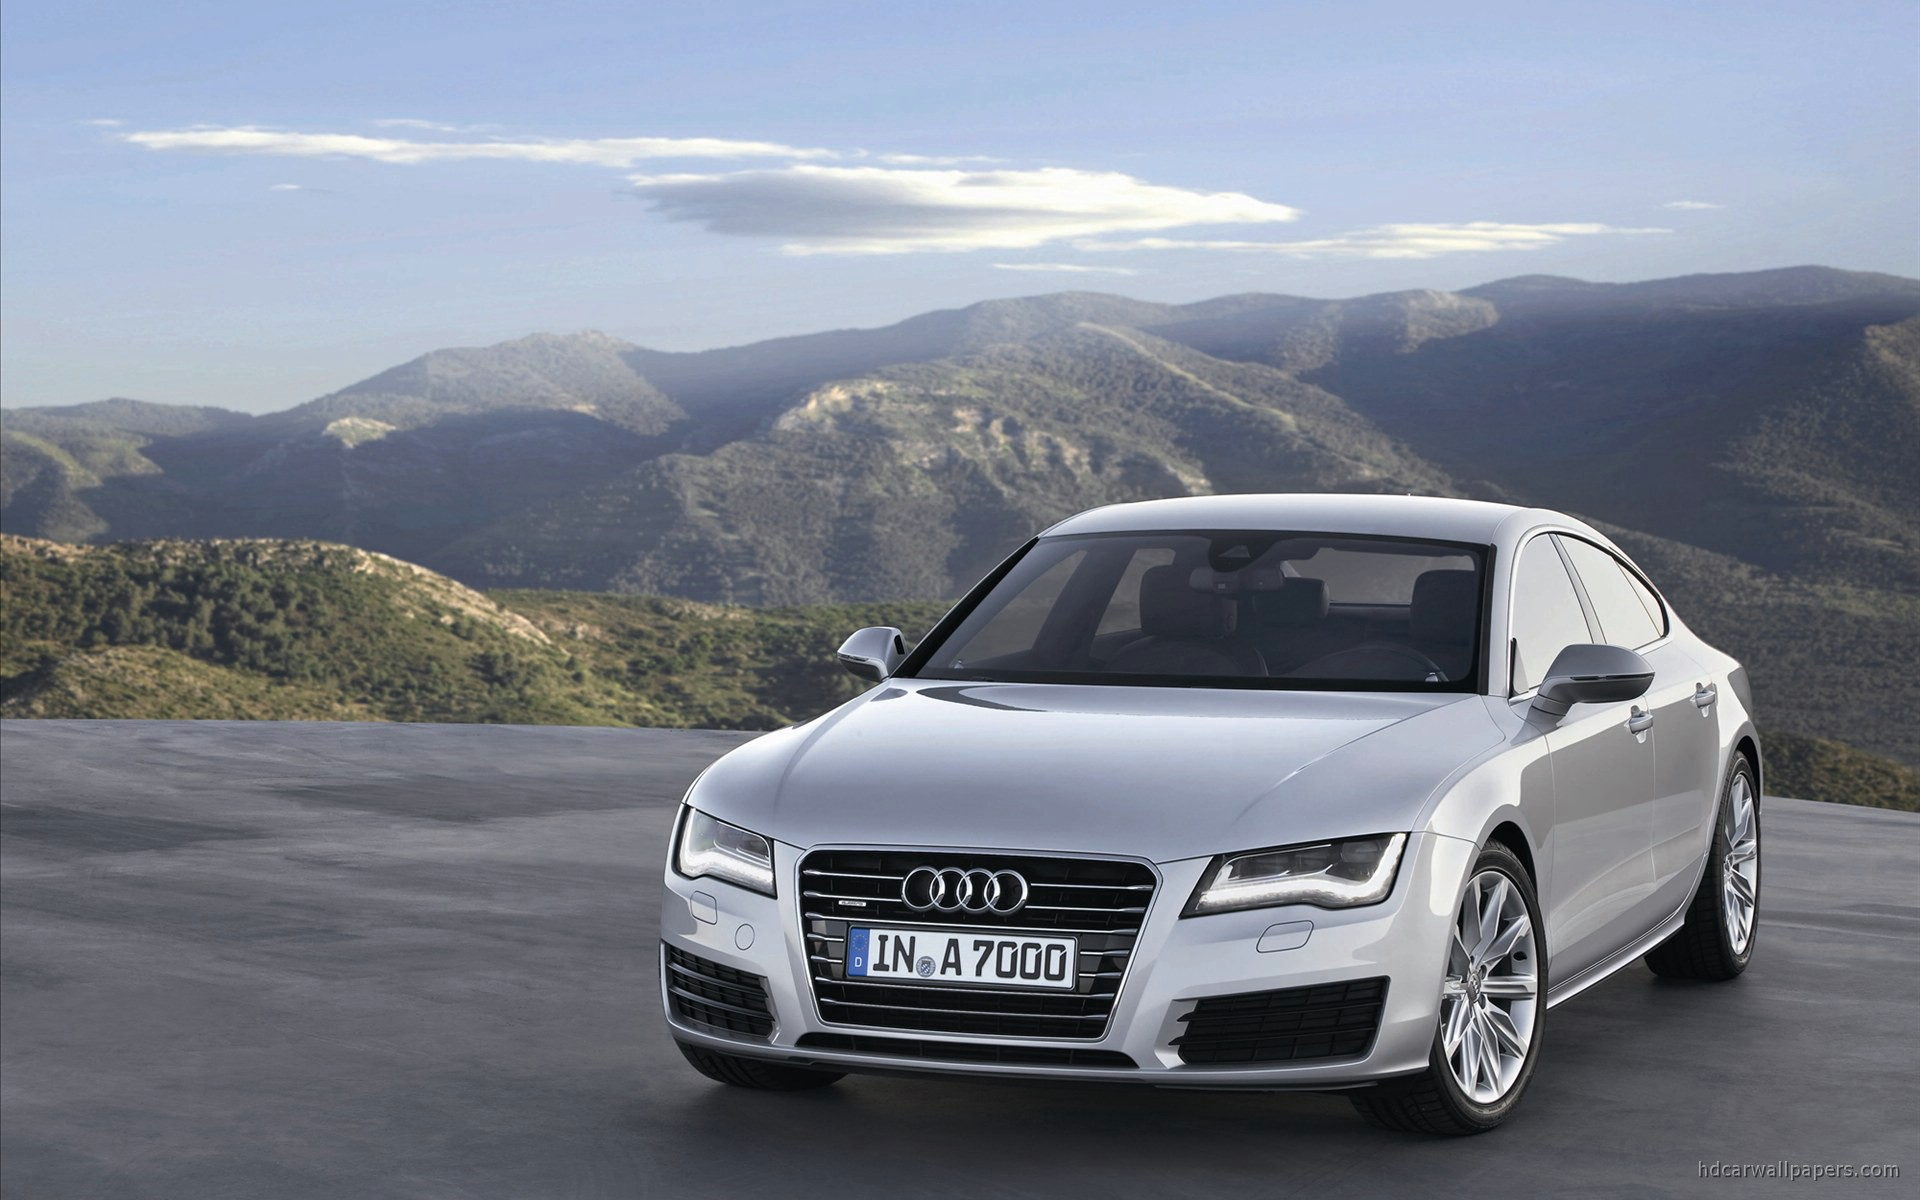 2011 Audi A7 2 Wallpaper Hd Car Wallpapers Id 1843